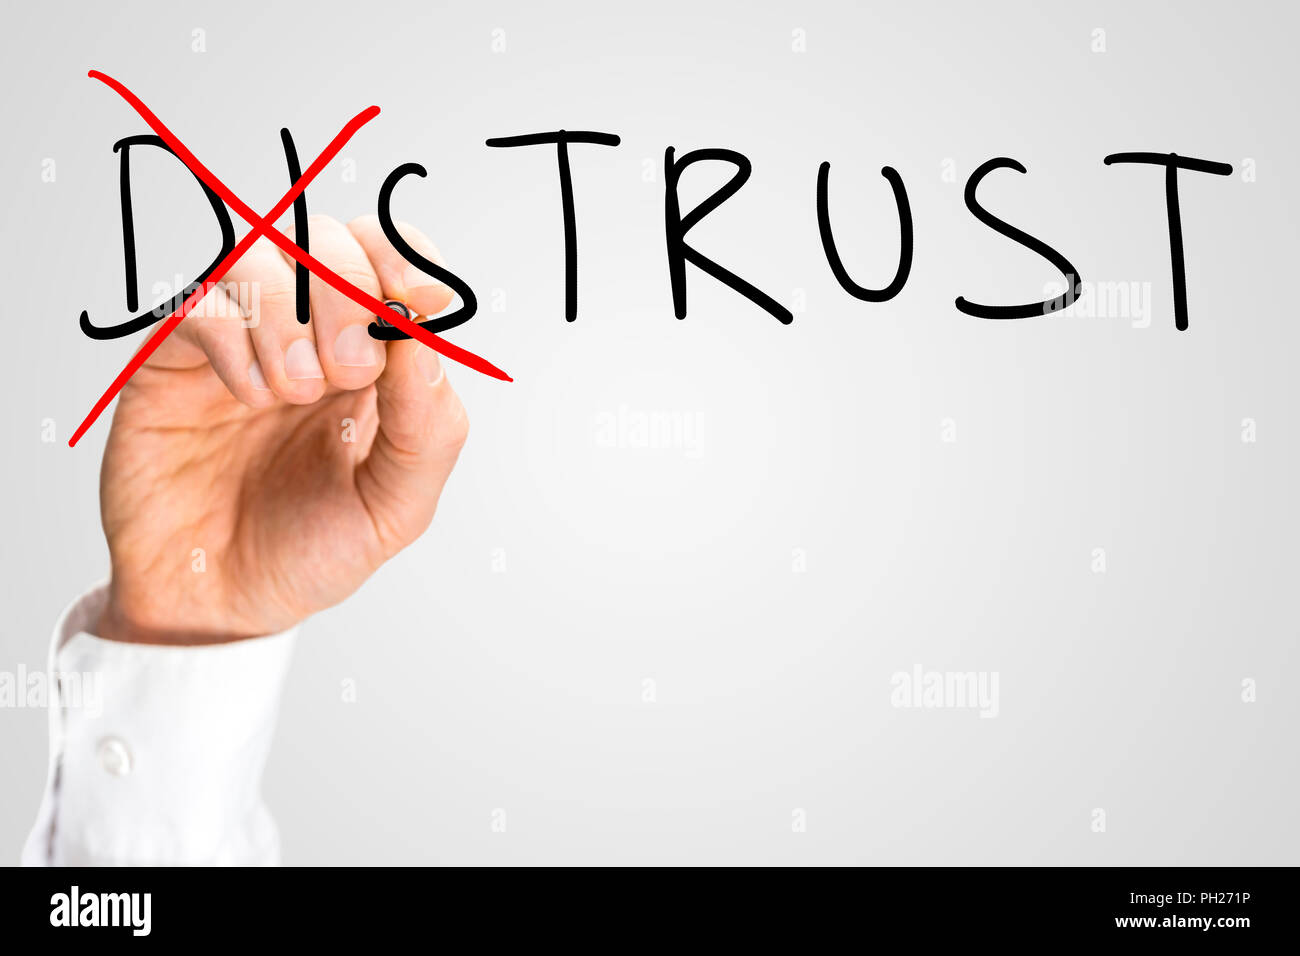 Conceptual image of the two opposite concepts of Distrust versus Trust with a man writing the word Distrust on a virtual screen and then crossing thro - Stock Image